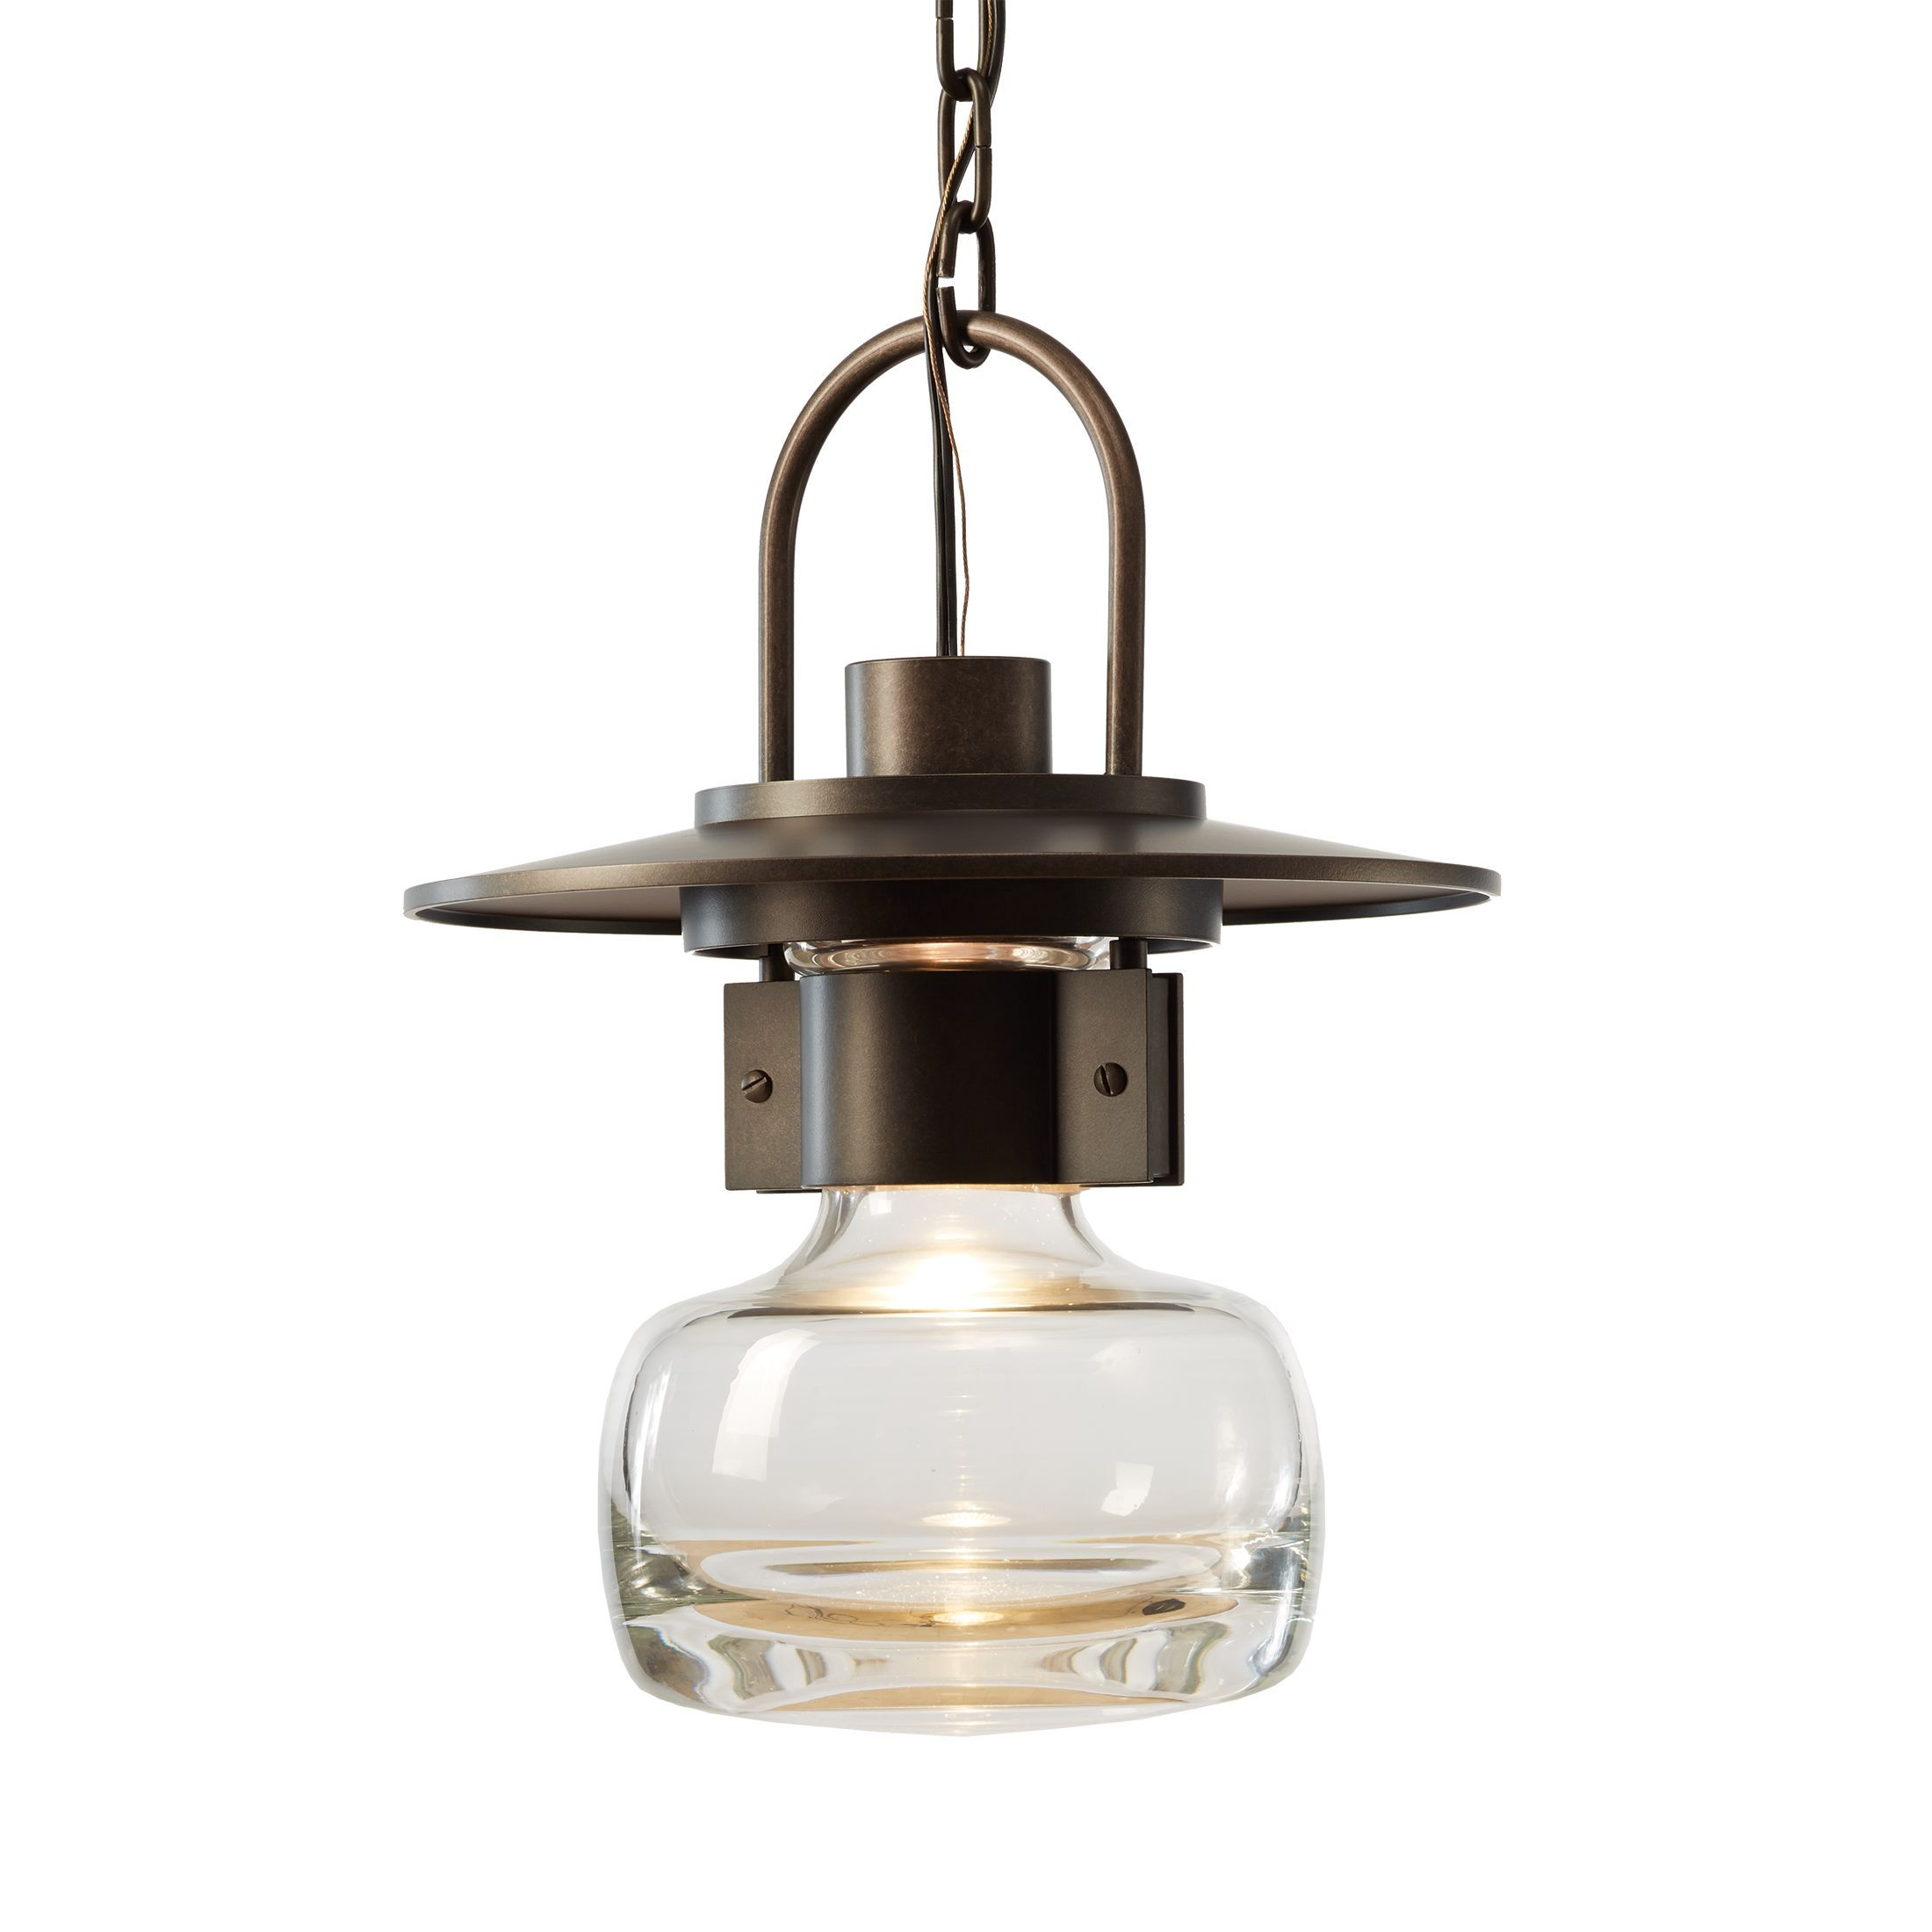 Mason Large Outdoor Ceiling Fixture 363005 Http Goo Gl Luhdms